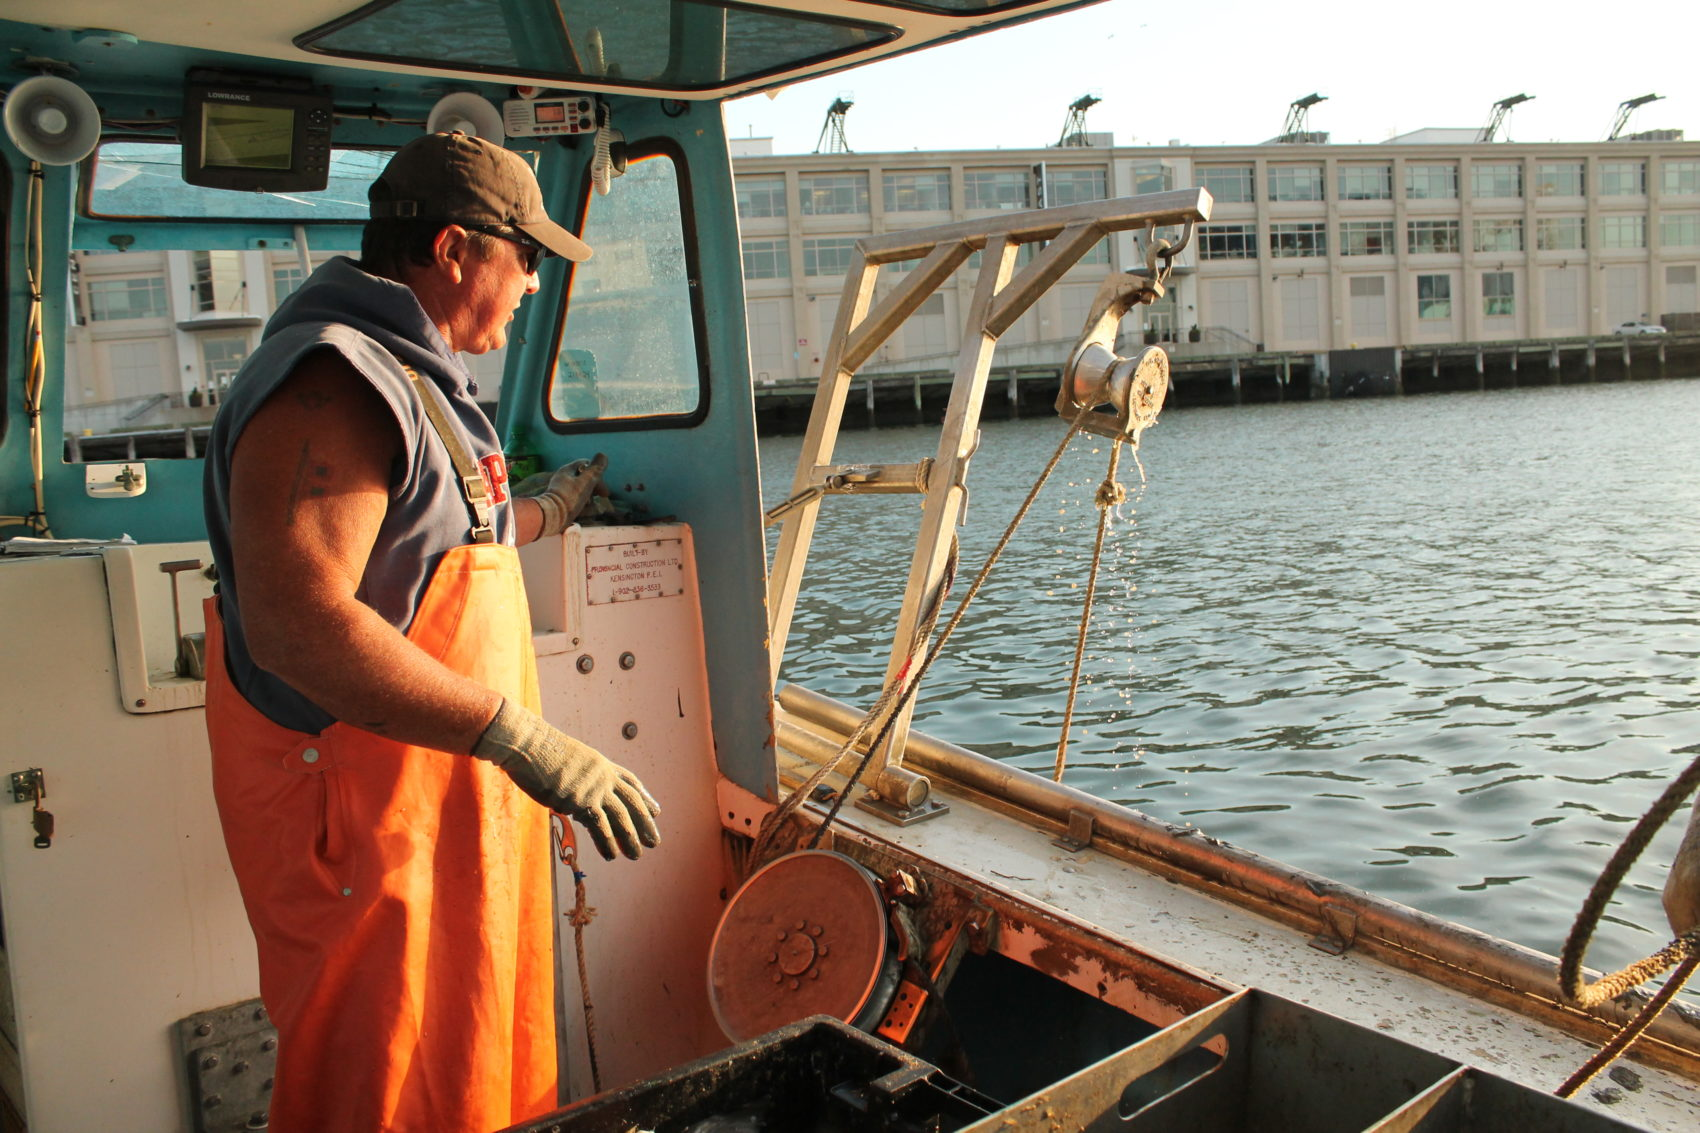 Lobsterman Steve Holler hoists his lobster traps out of Boston Harbor and into his boat on a July morning. (Hannah Chanatary/WBUR)